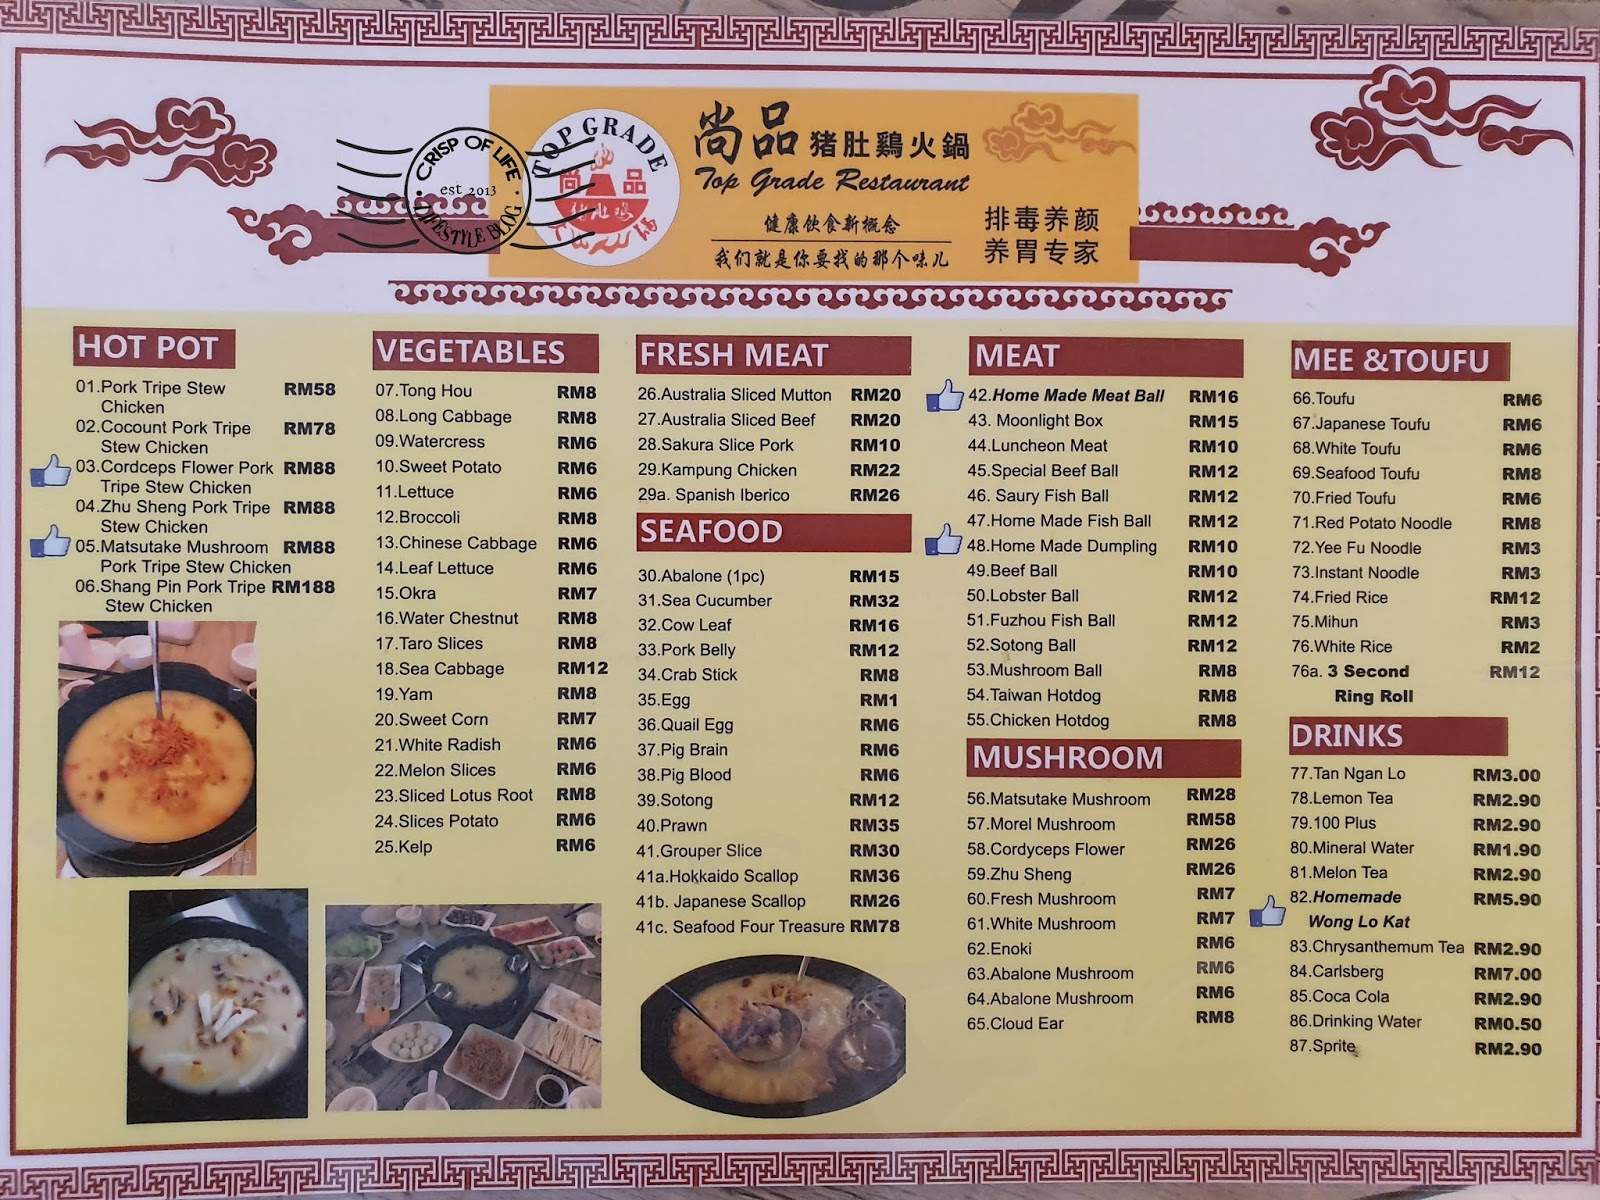 Top Grade Steamboat Restaurant 尚品猪肚鸡火锅 @ Jelutong, Penang